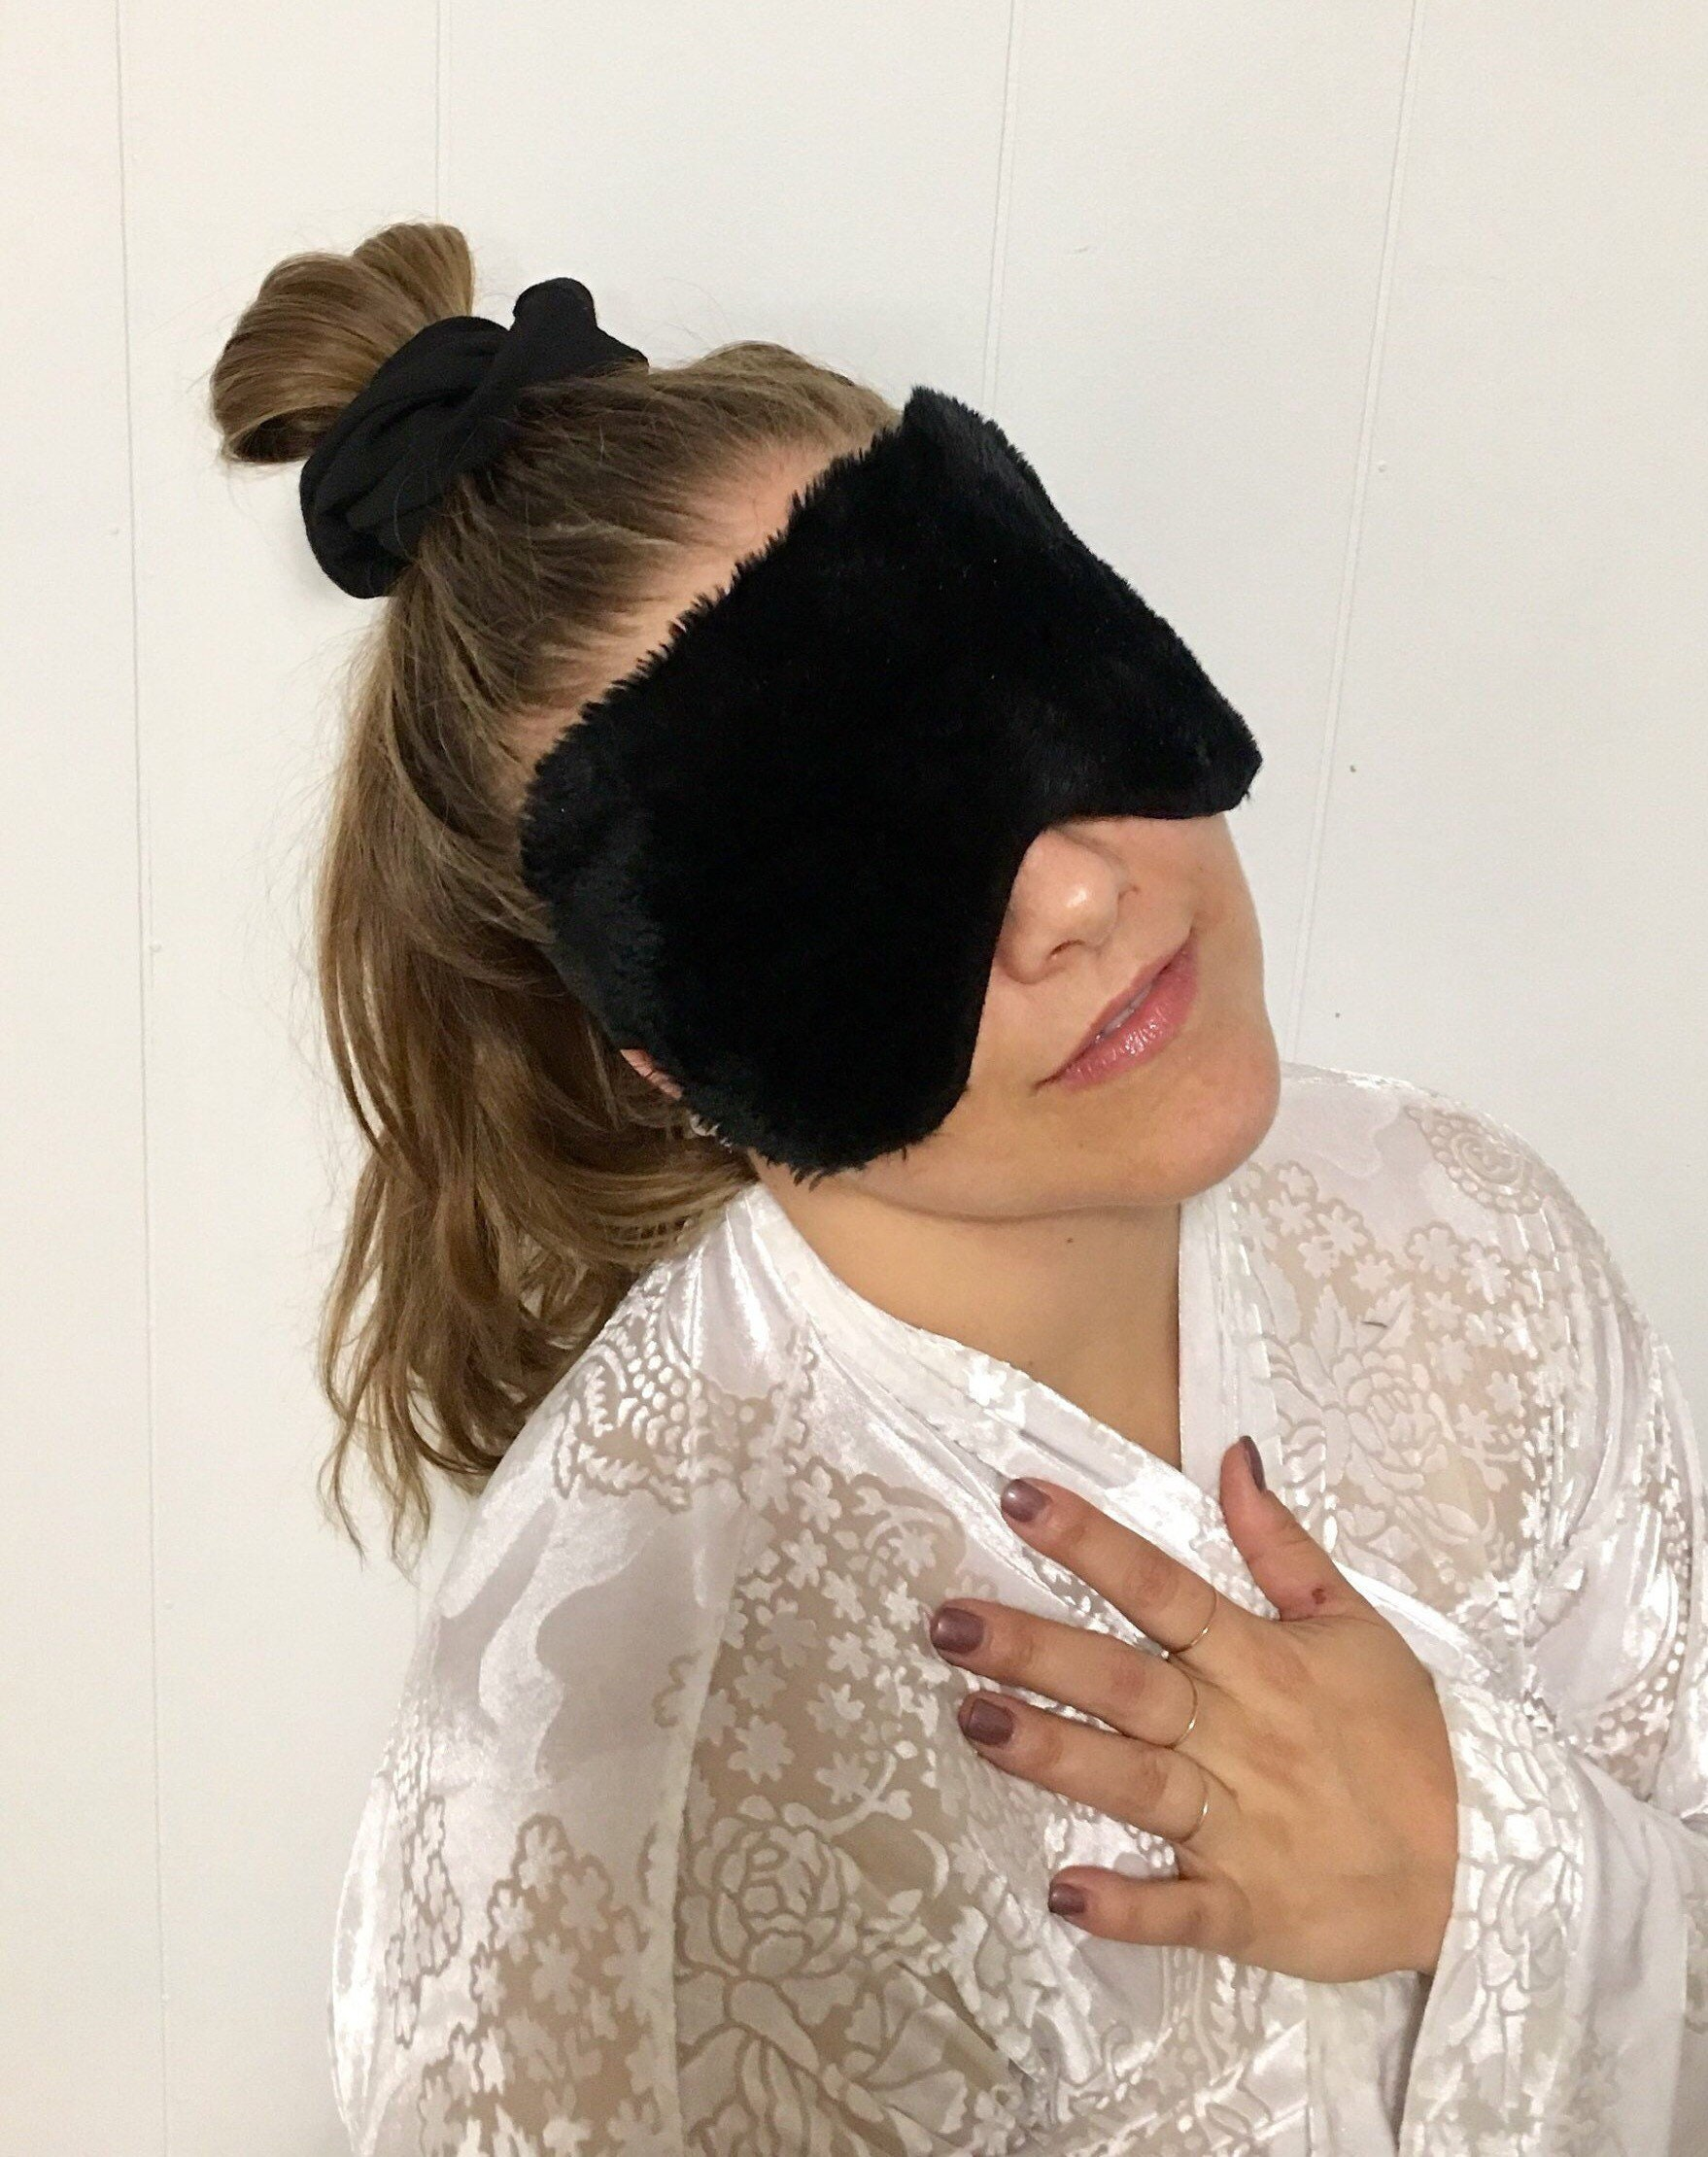 Gifts for Him Blackout Oversized Eyemask backed with Silk Satin Eye Mask Gifts for Her Sleepmask Fuck Off thick elastic band